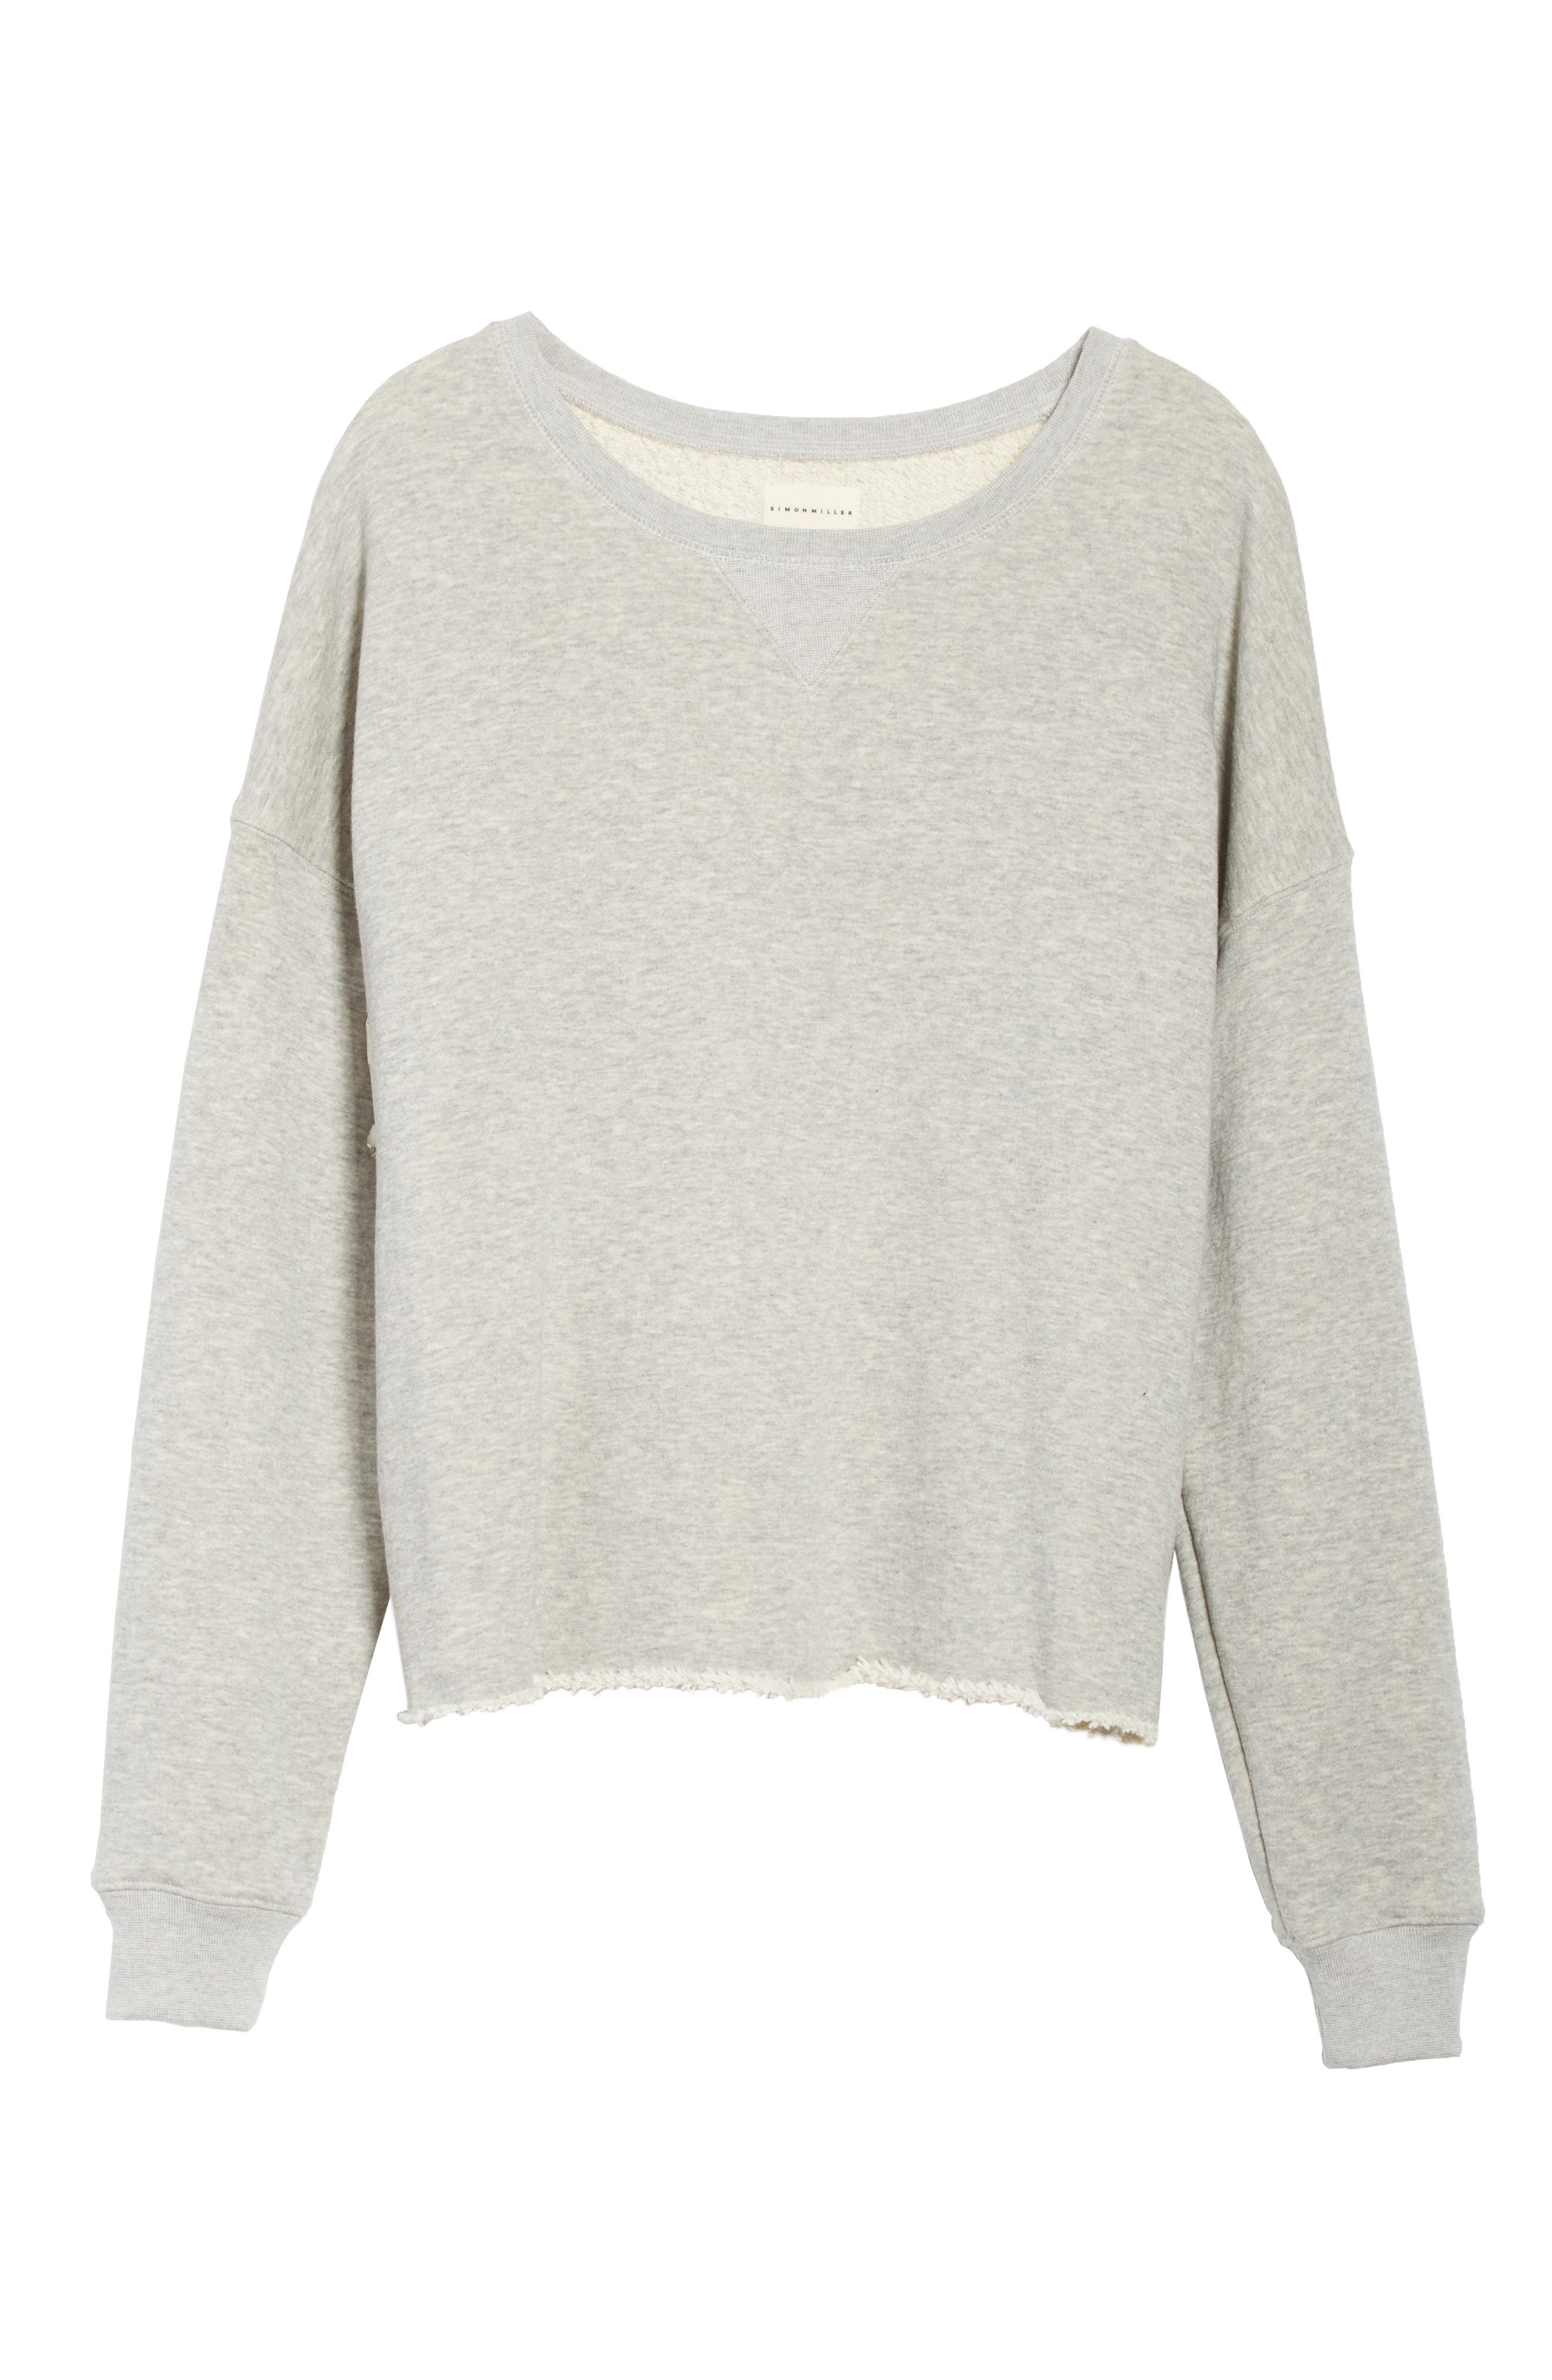 Brushed Terry Sweatshirt,                             Alternate thumbnail 6, color,                             020